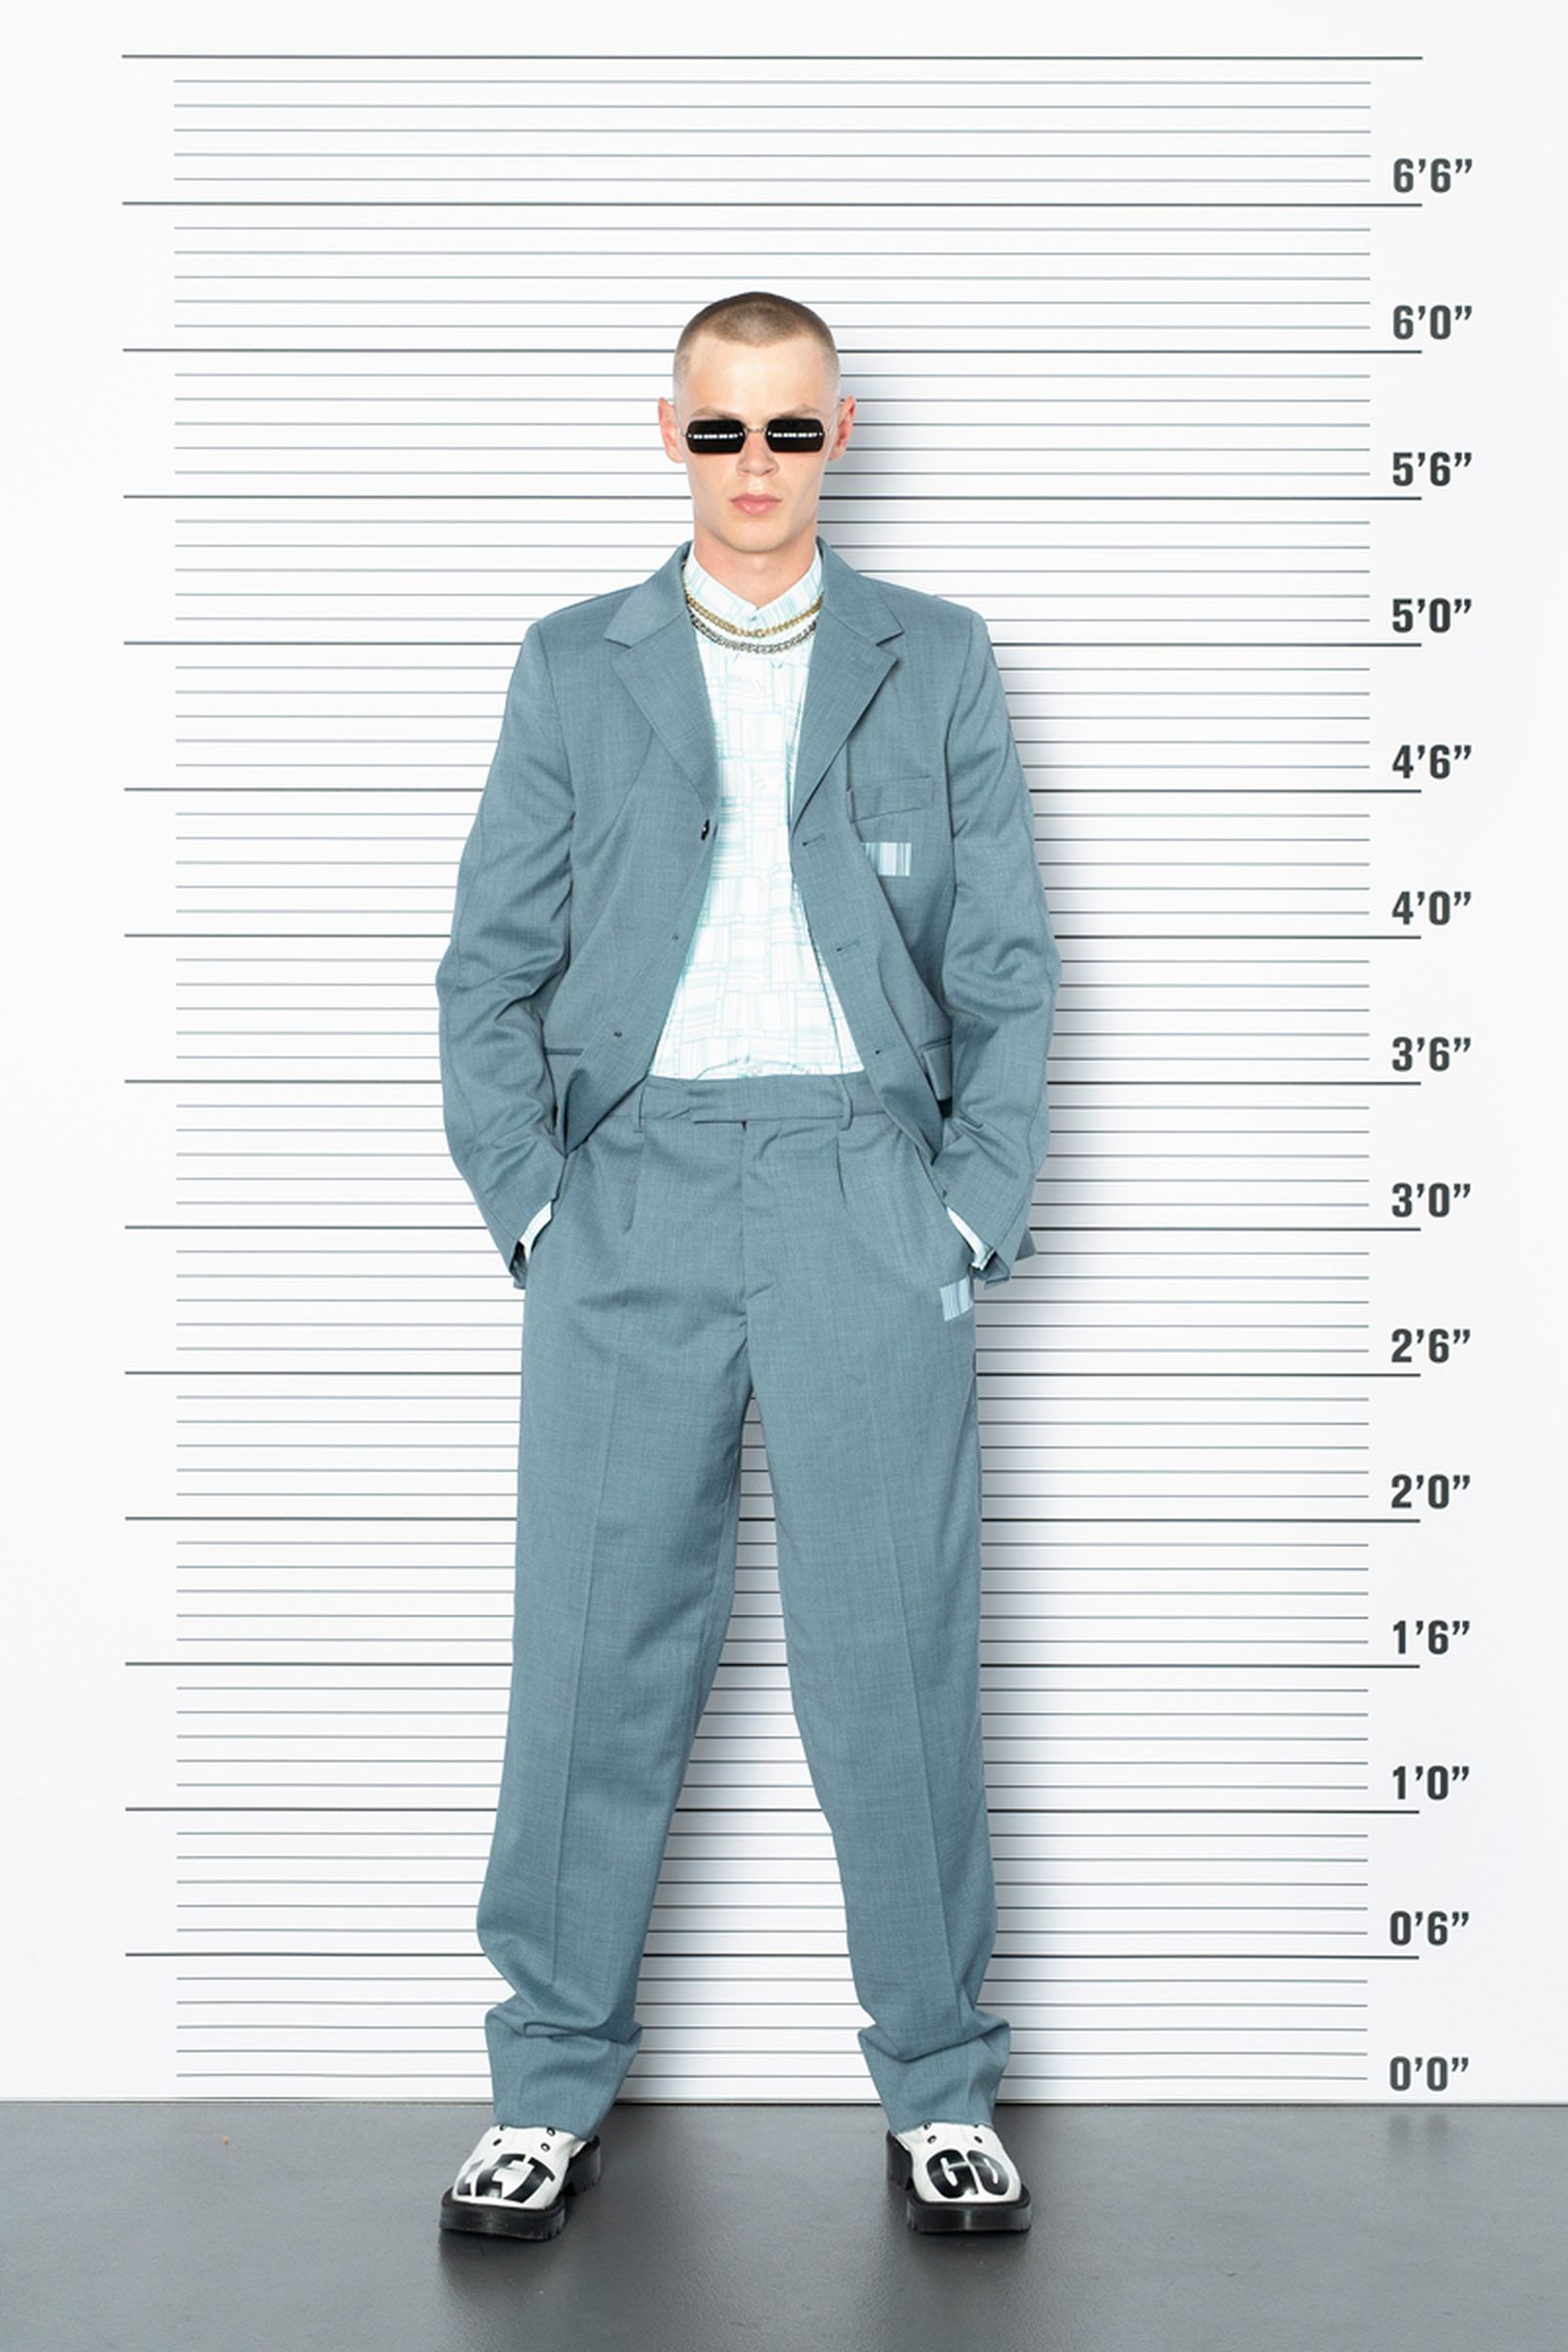 vetements-vtmnts-ss22-collection-lookbook- (97)